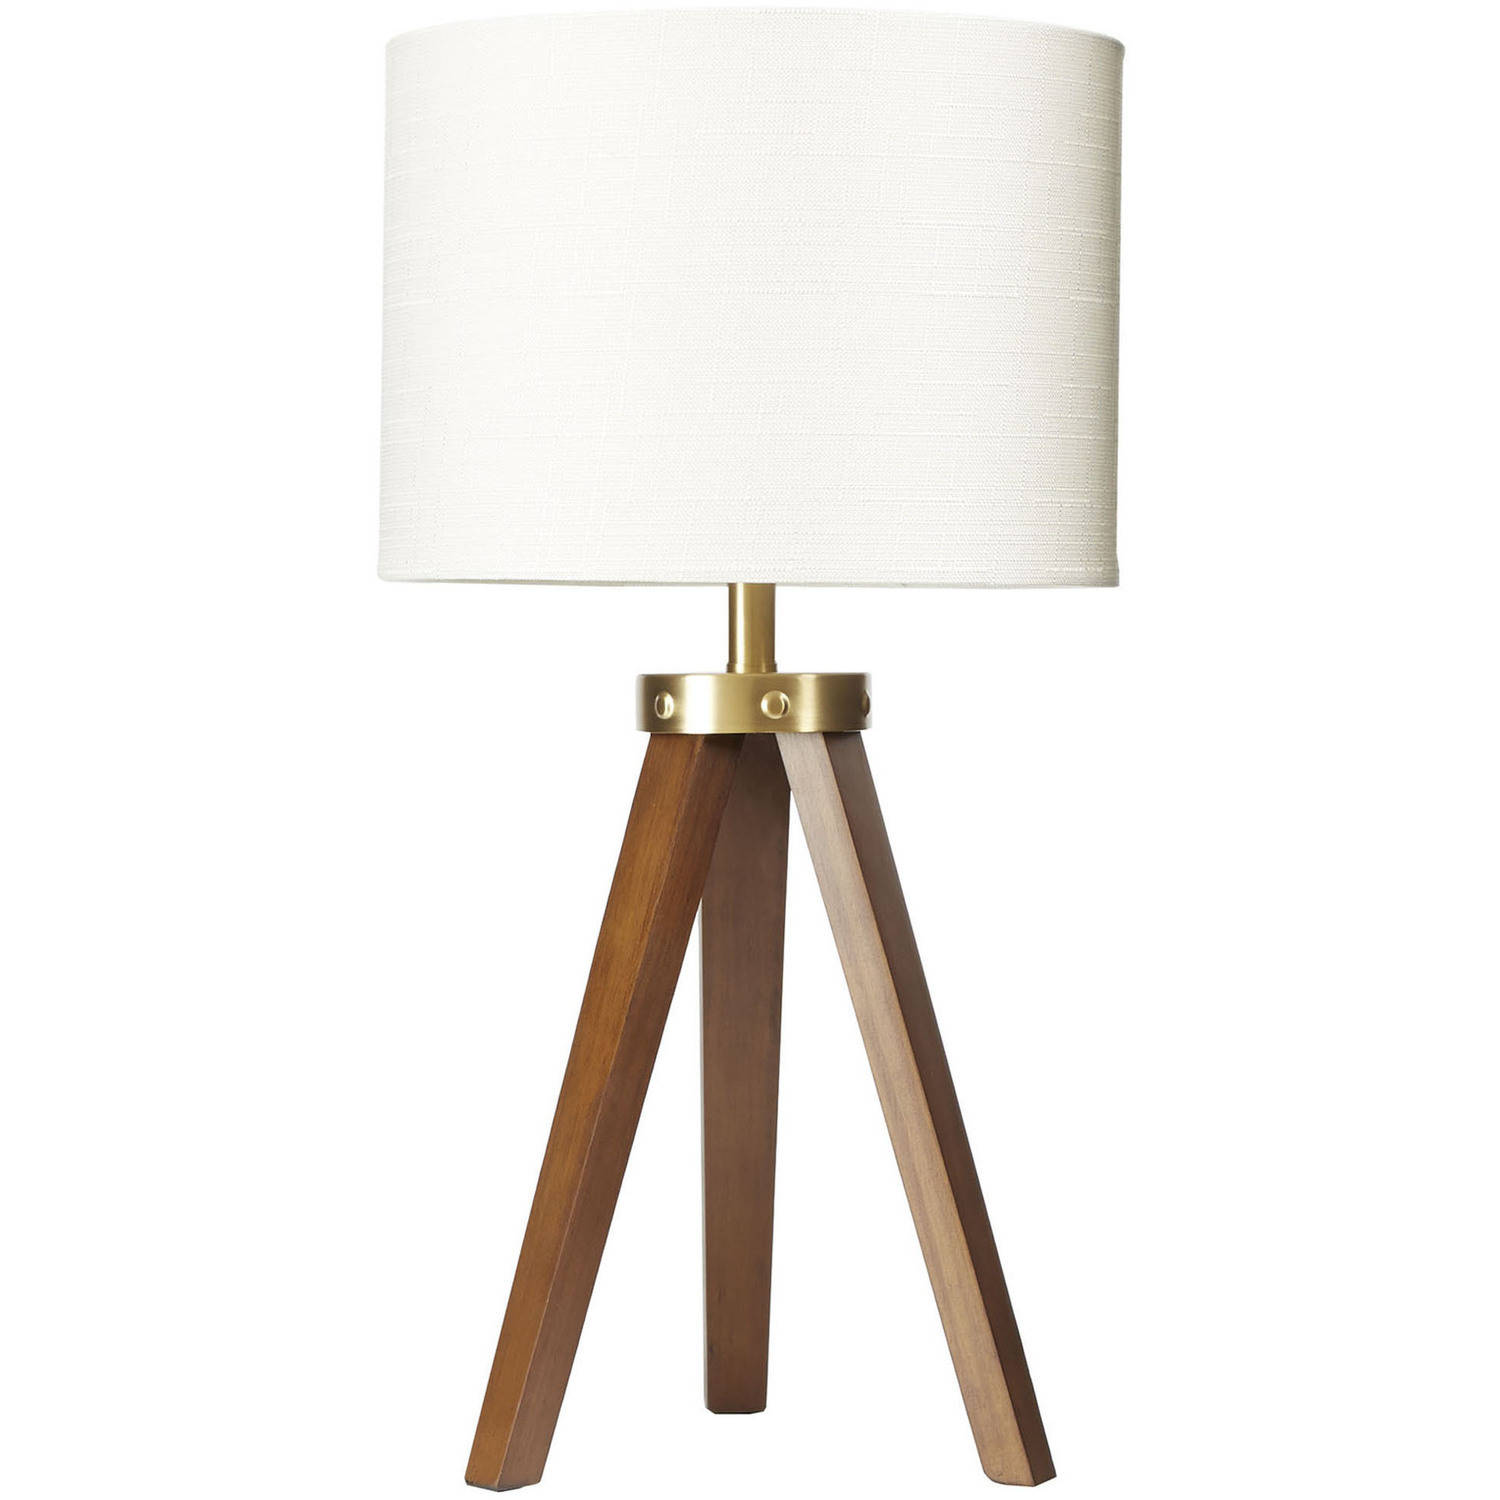 Better Homes And Gardens Wood Tripod Table Lamp, CFL Bulb Included